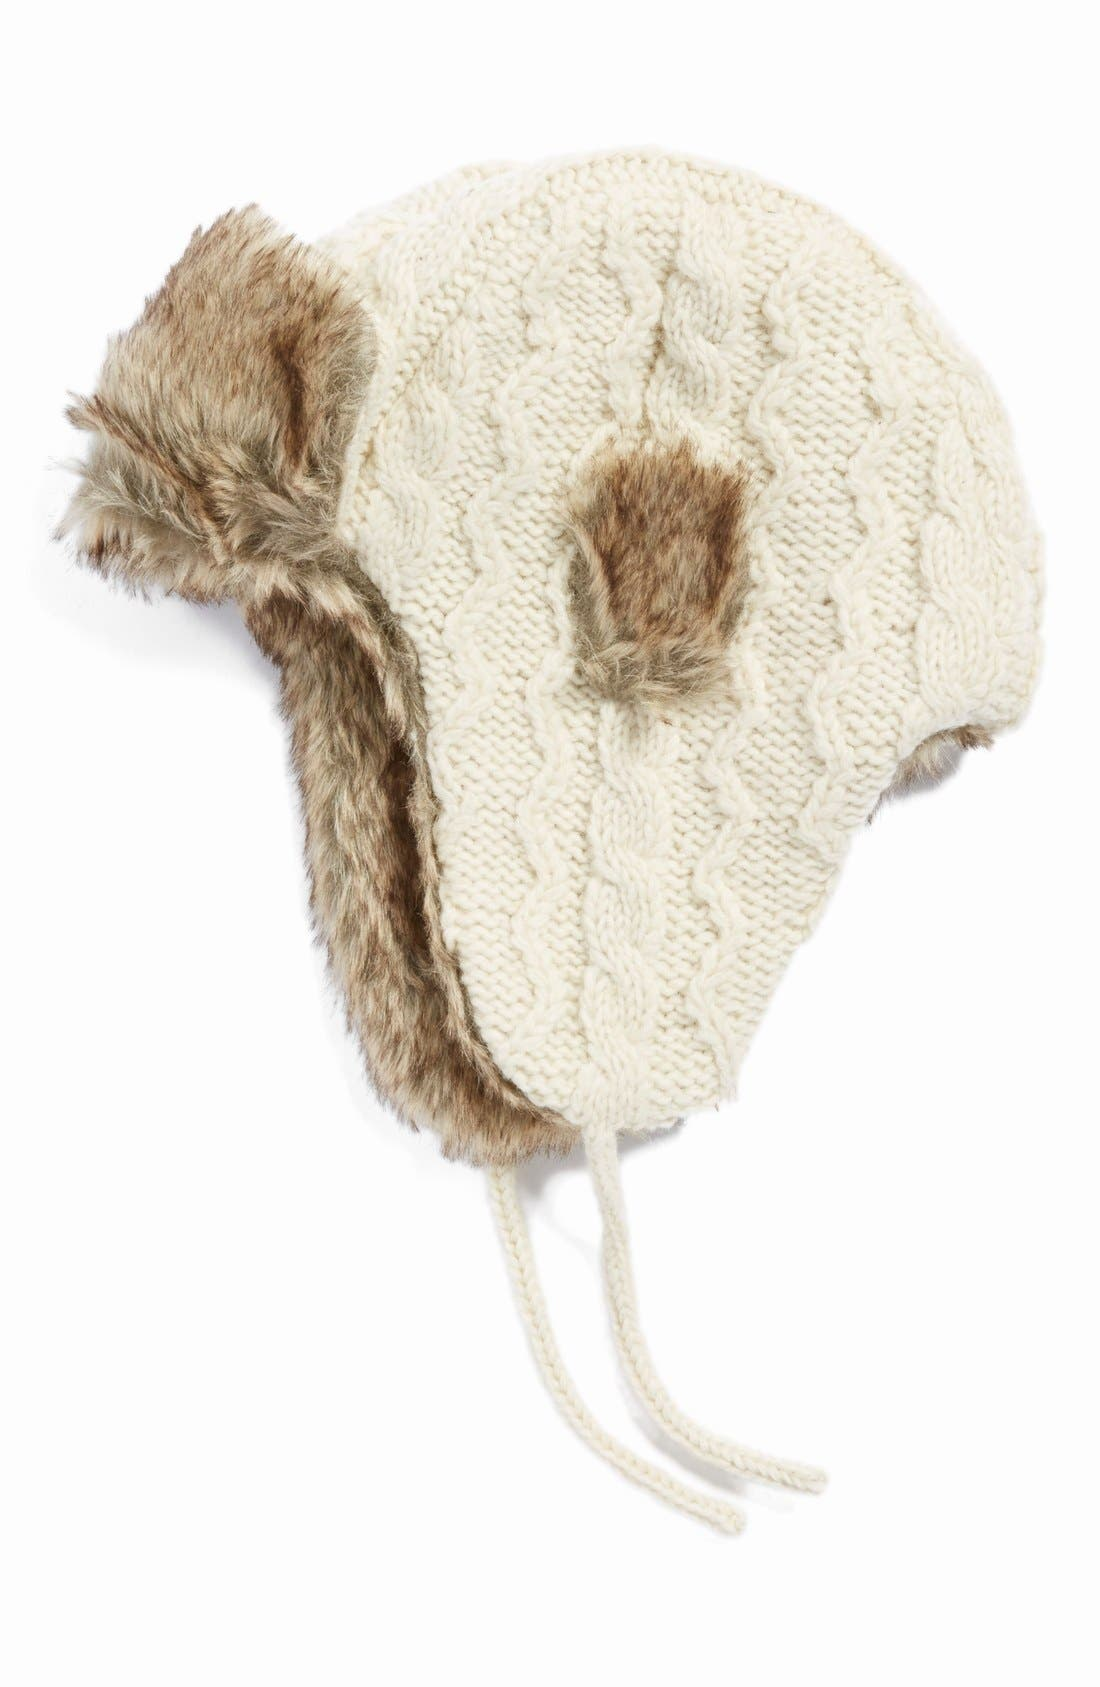 NirvannaDesigns Cable Knit Ear Flap Hat with FauxFur Trim,                         Main,                         color, White